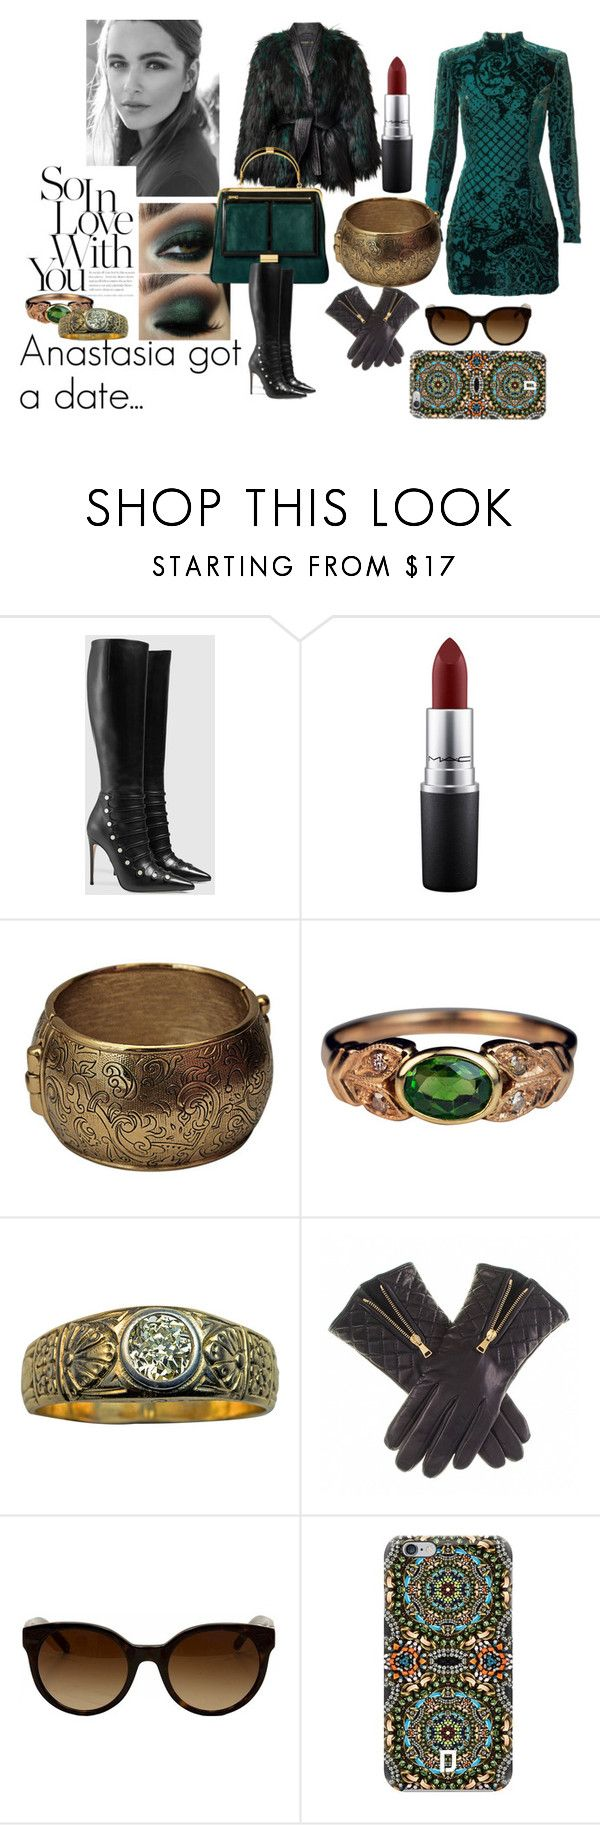 """""""Anastasia in love"""" by supersilent on Polyvore featuring Balmain, Gucci, MAC Cosmetics, Yves Saint Laurent, Tory Burch, DANNIJO, modern, women's clothing, women's fashion and women"""